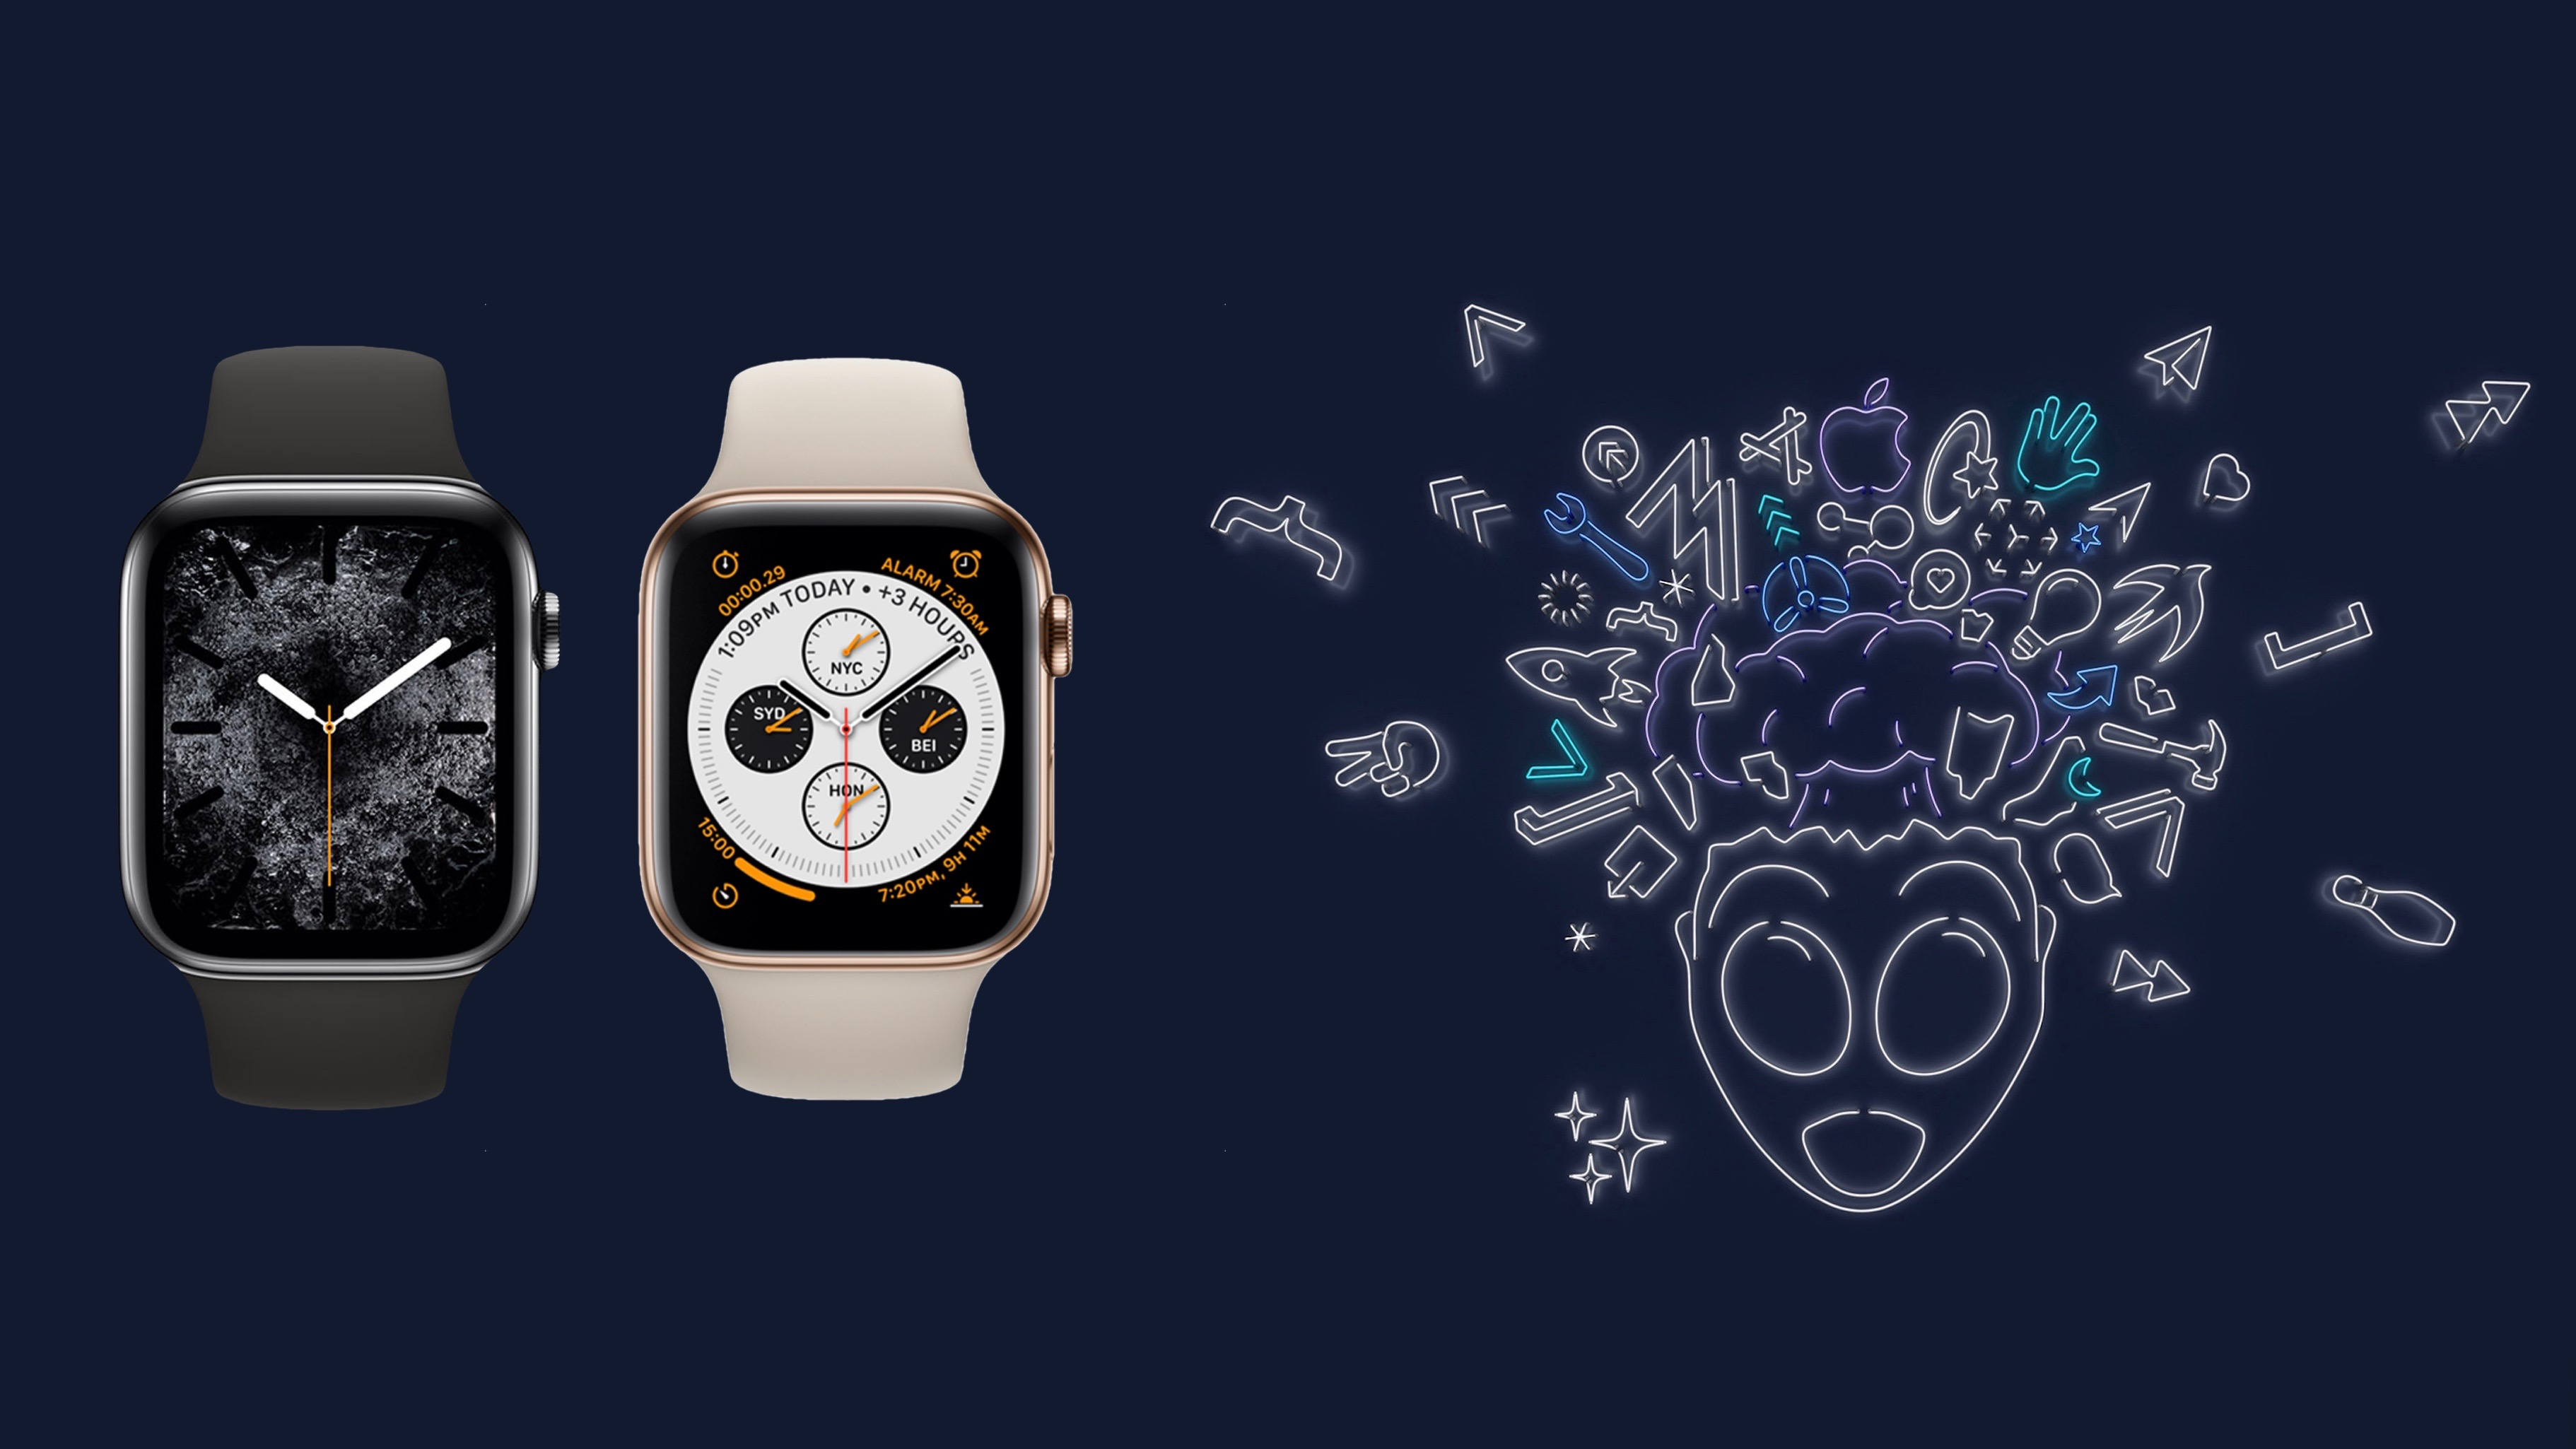 watchOS 6 features WWDC 2019